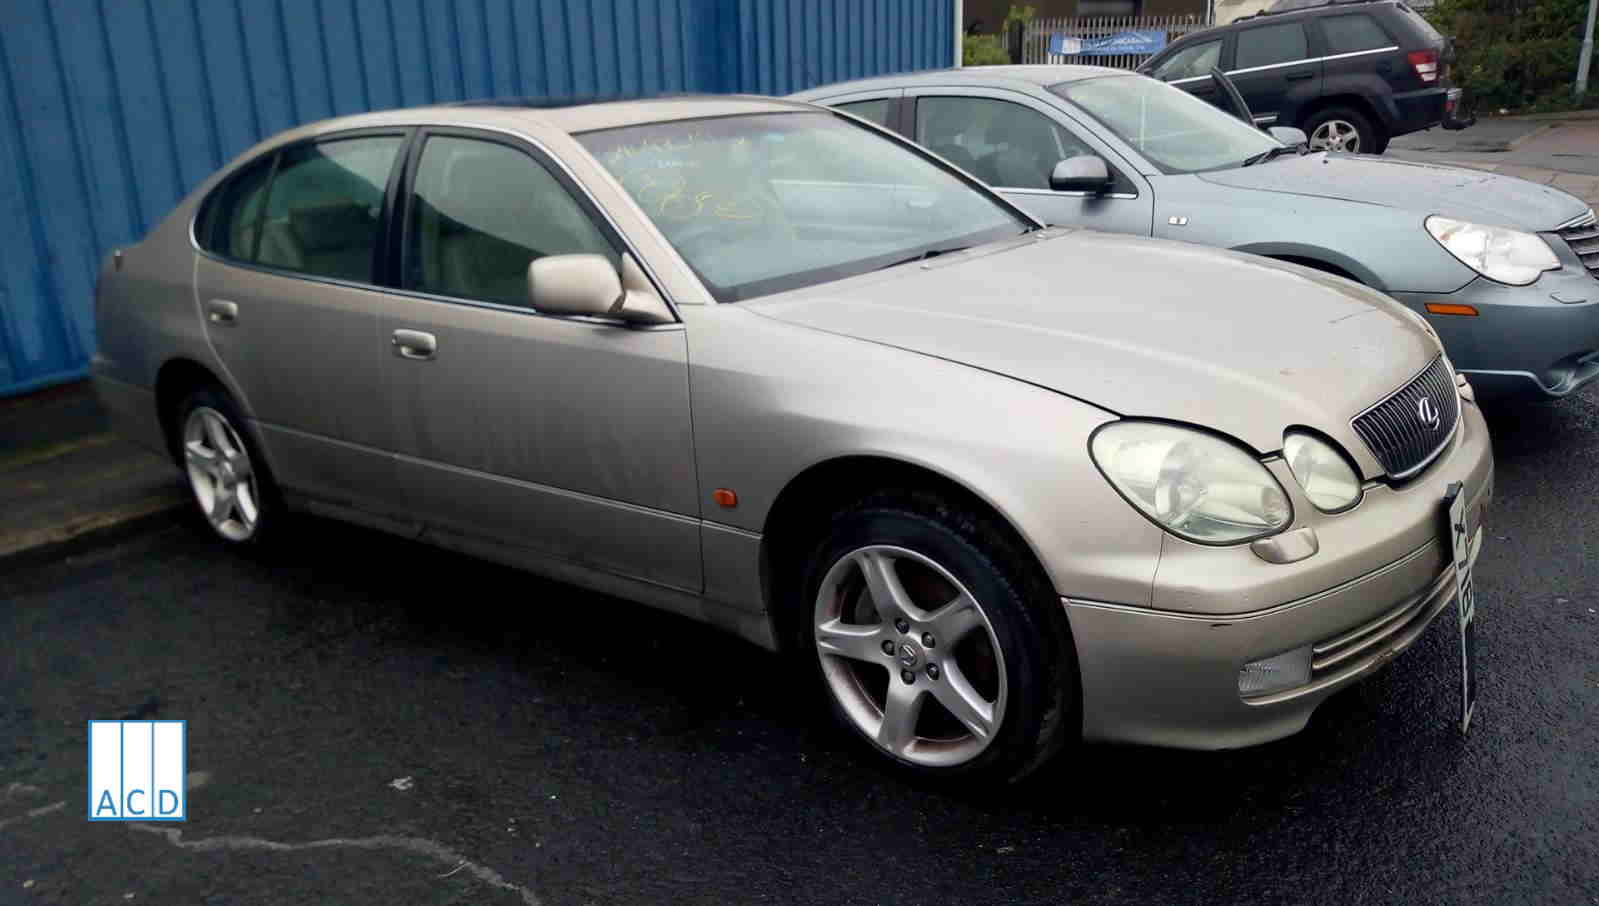 LEXUS GS300 SE secondhand parts